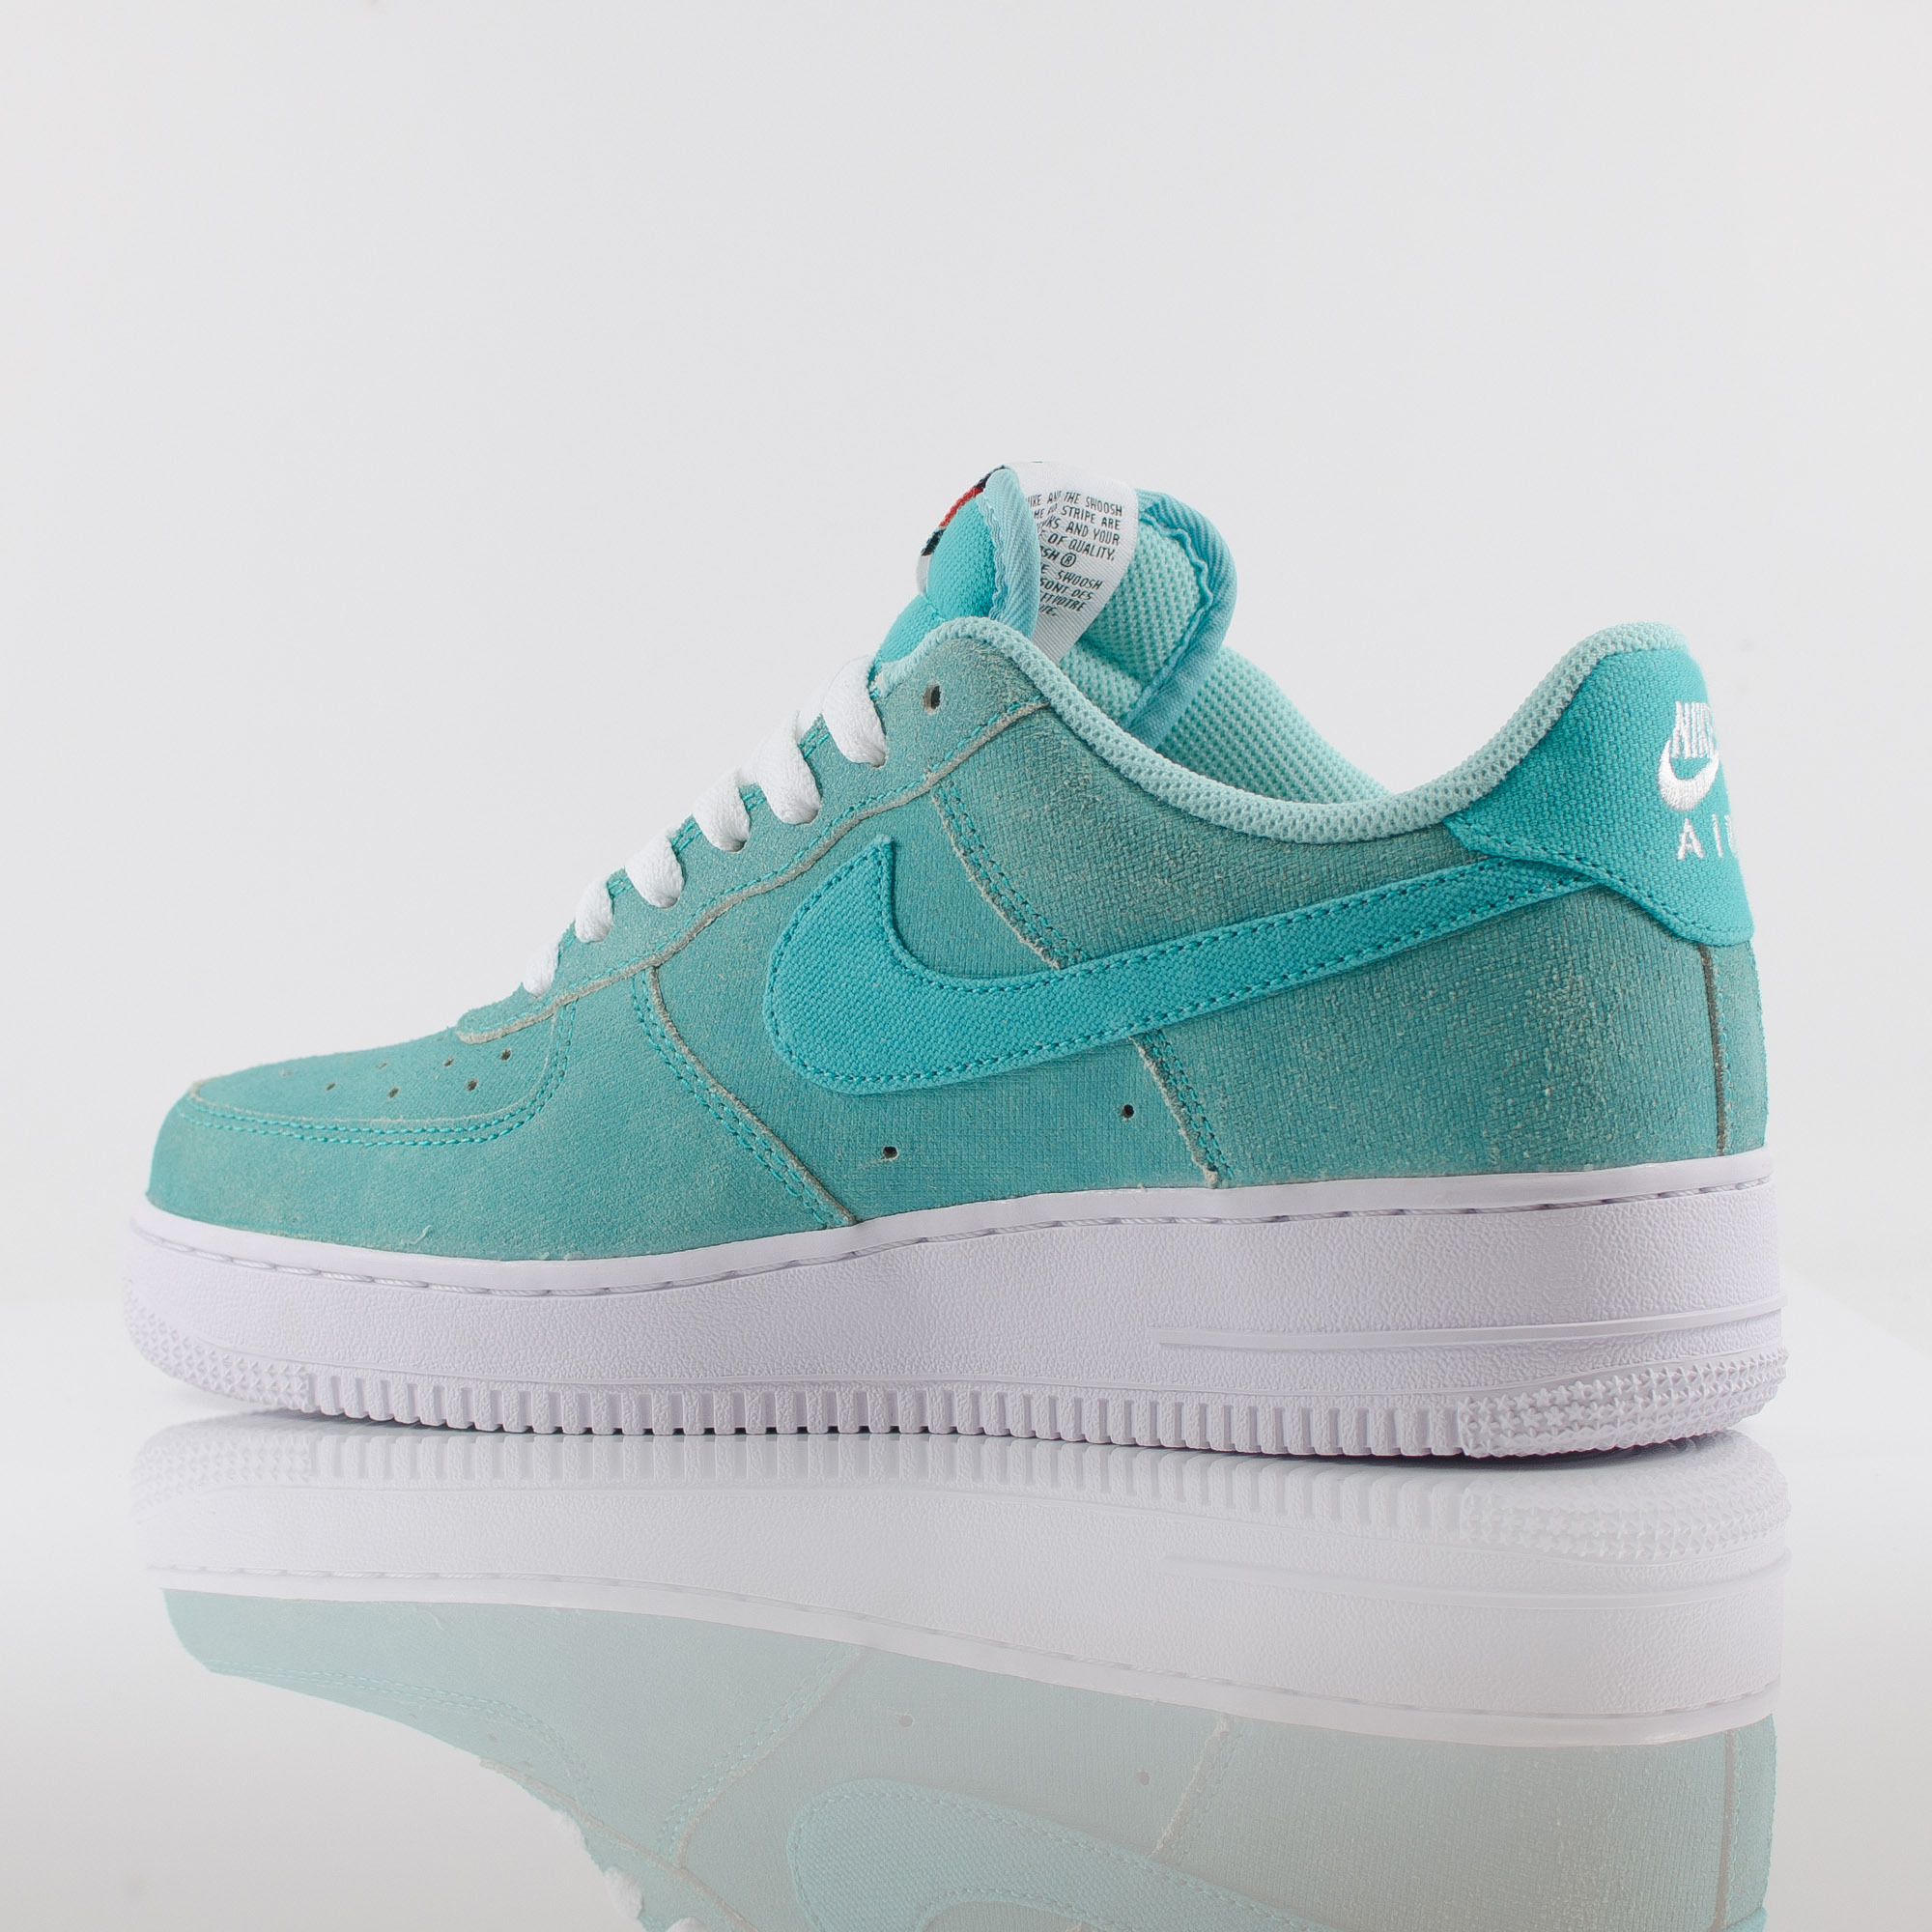 Nike Air Force Verdi